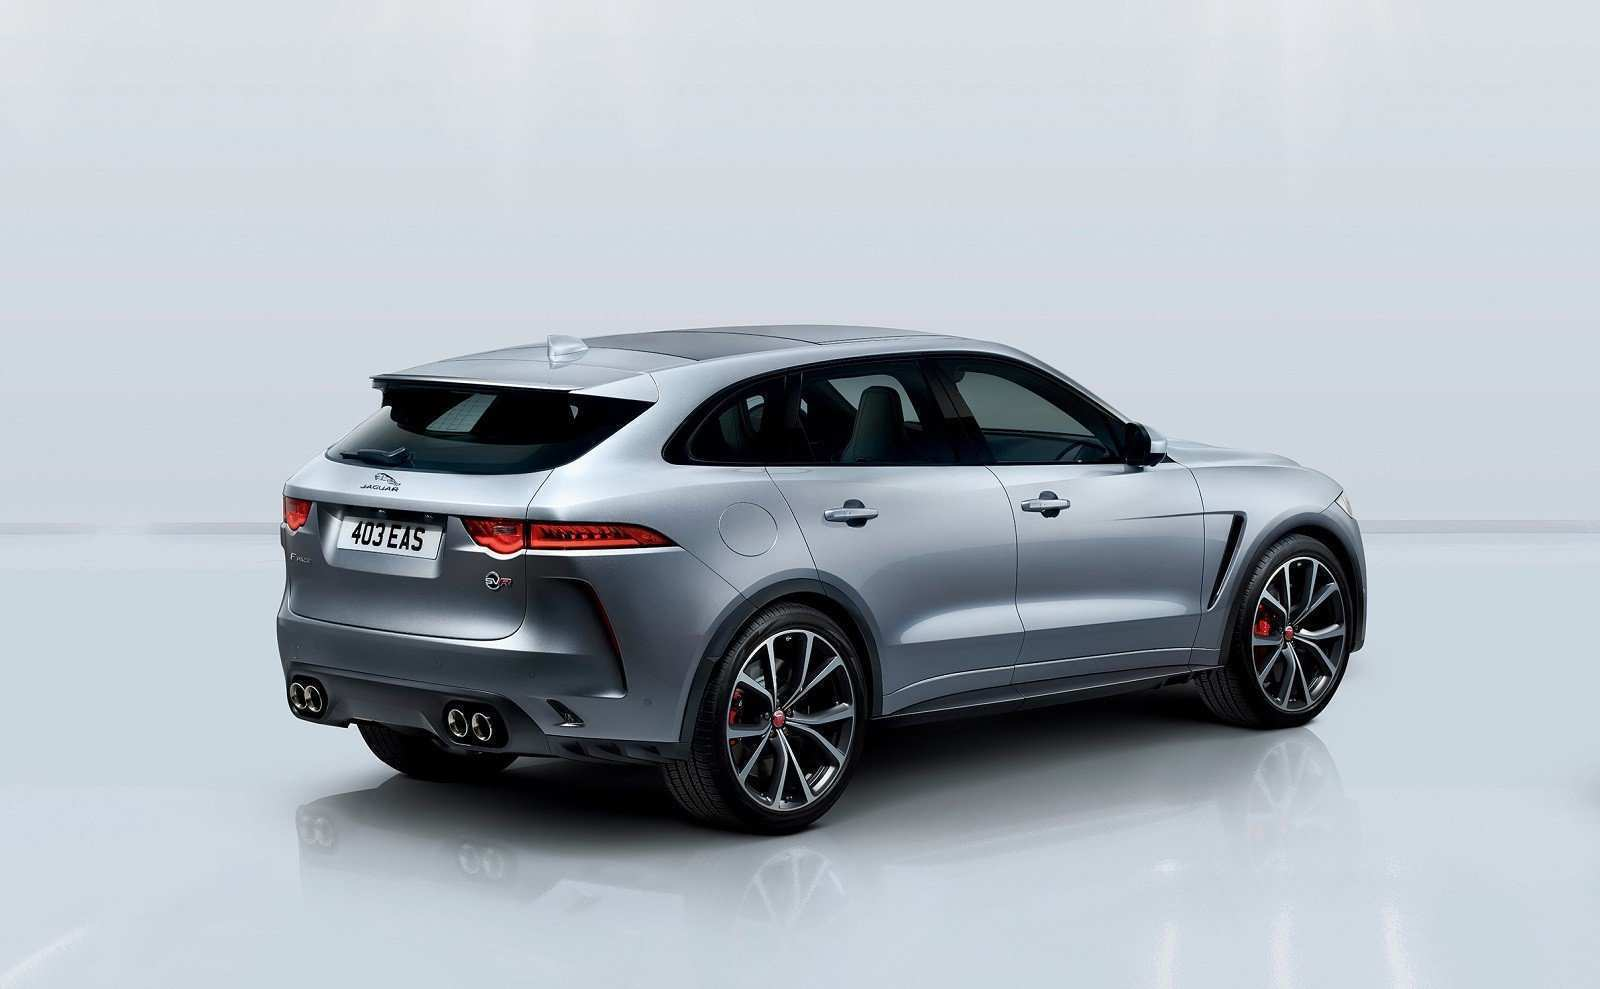 99 New Jaguar Suv 2019 Pictures